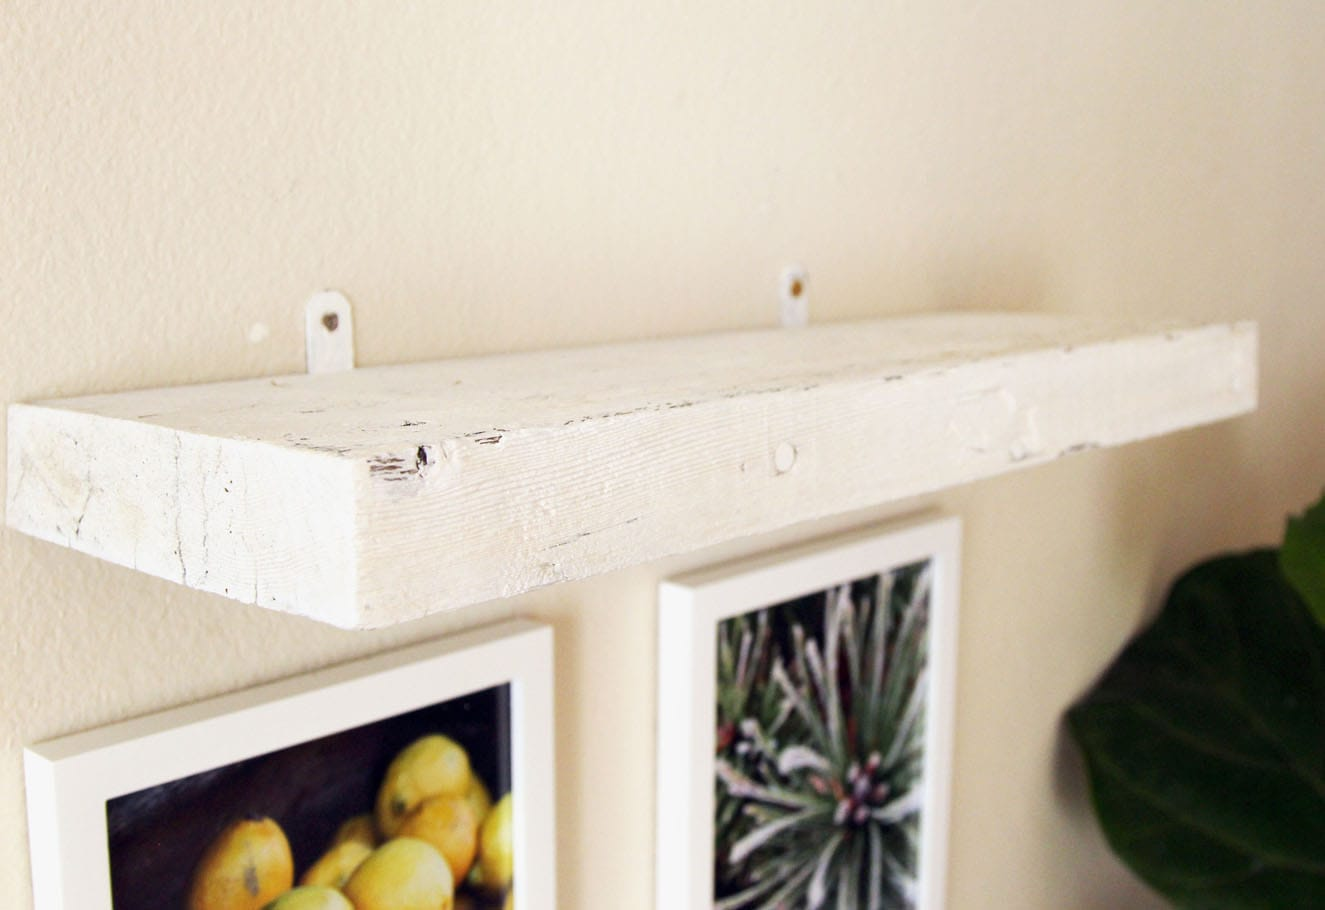 easy faux diy floating shelves minutes piece rainbow wall shelf apieceofrainbow without screws screw the brackets and onto because there are only tiny bits showing very each hide